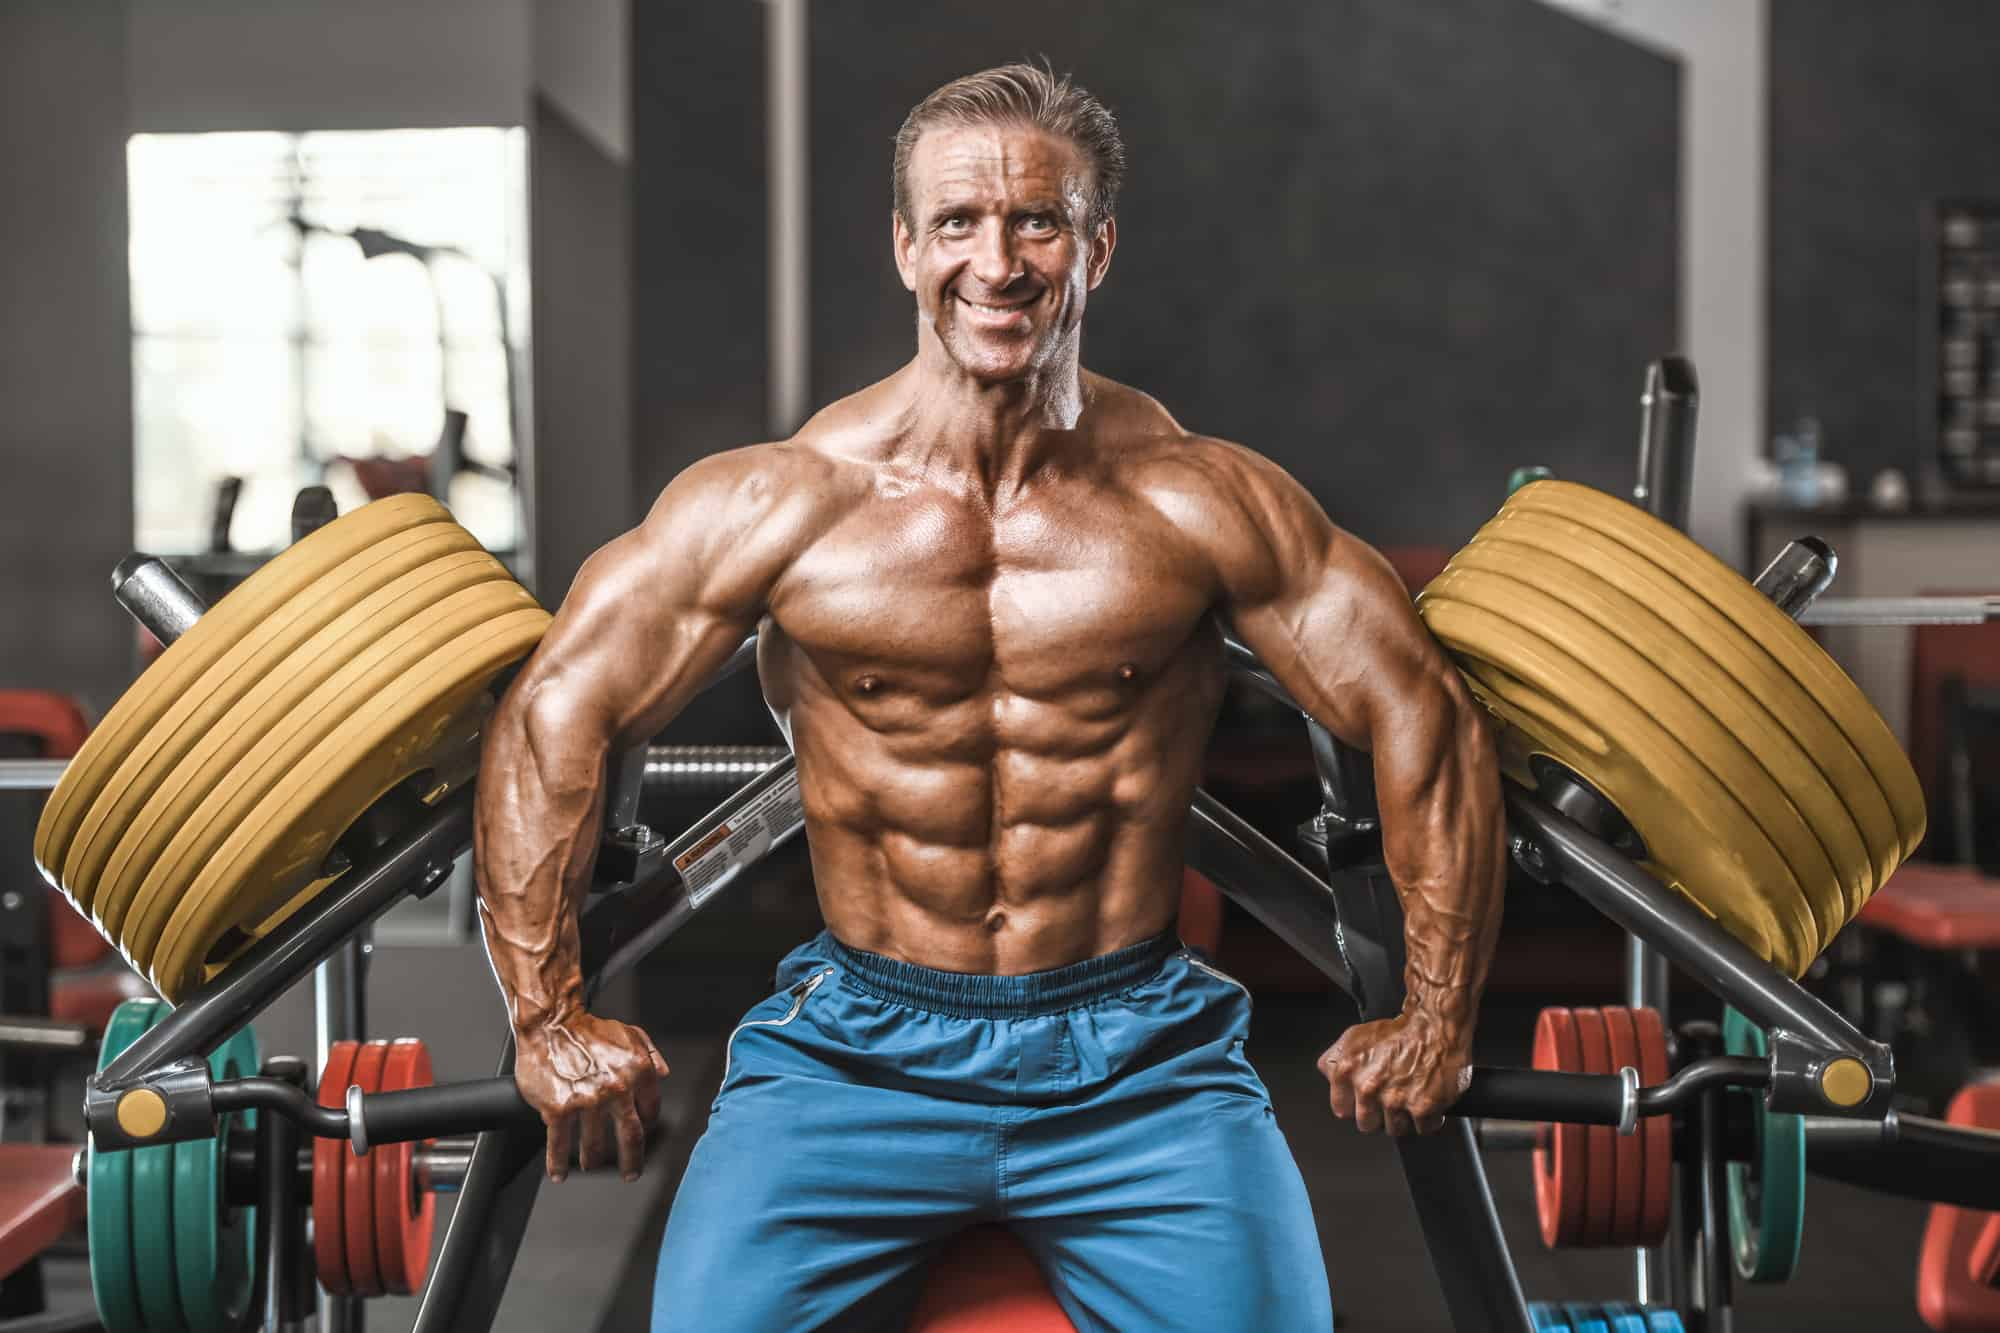 male body builder flexing in front of a workout machine with 45lb plates